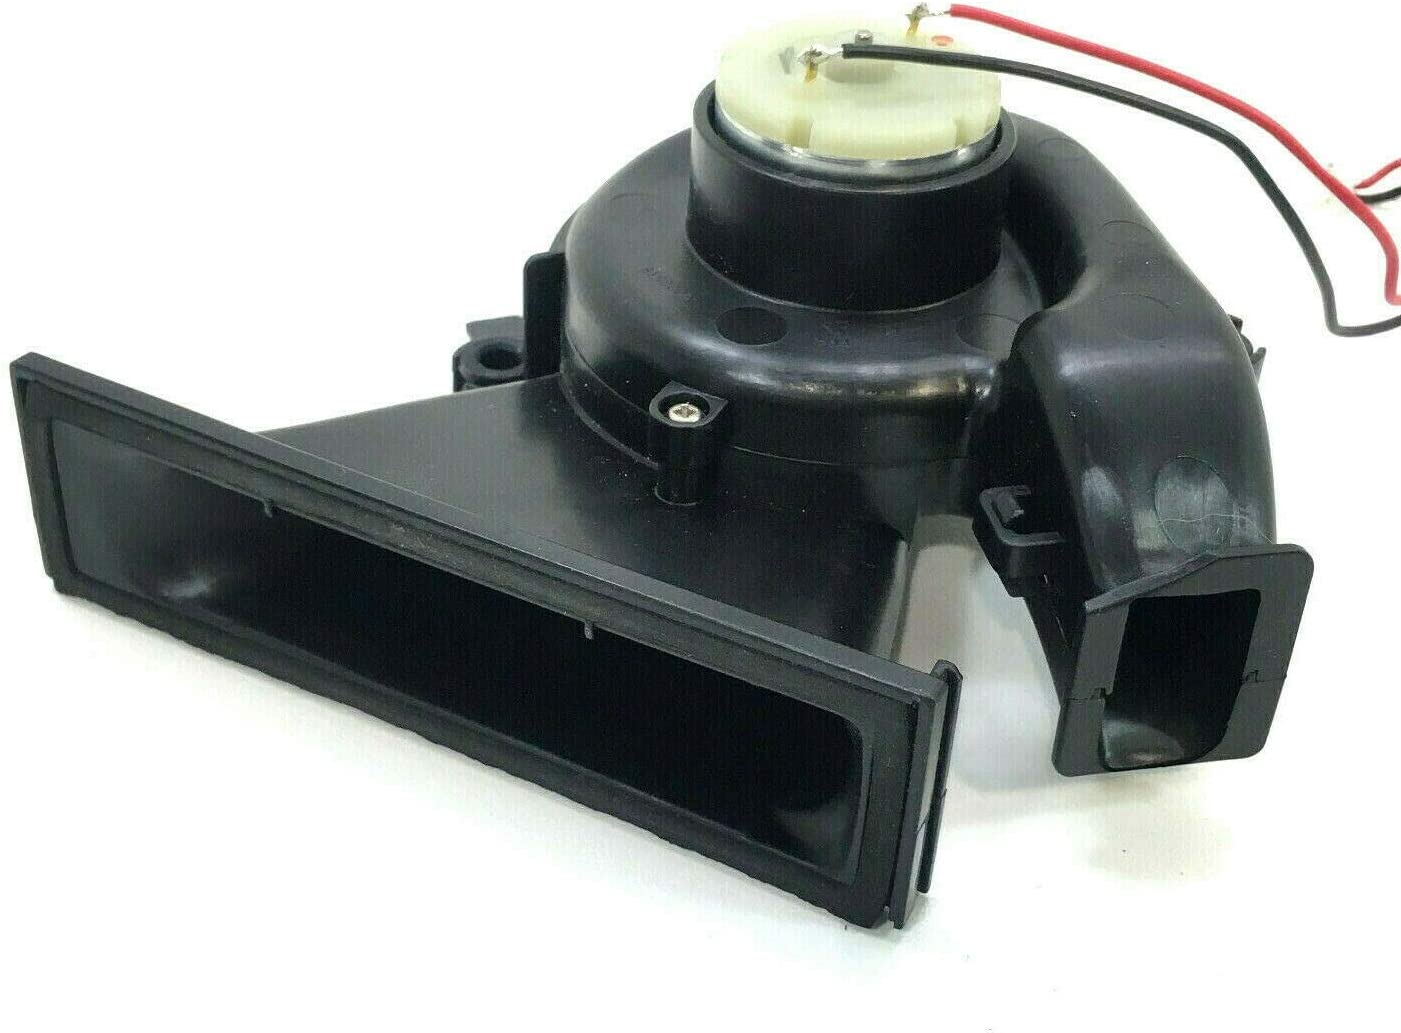 Shark Chassis//Motor//Main Unit for APEX DuoClean QU922QBL Vacuums